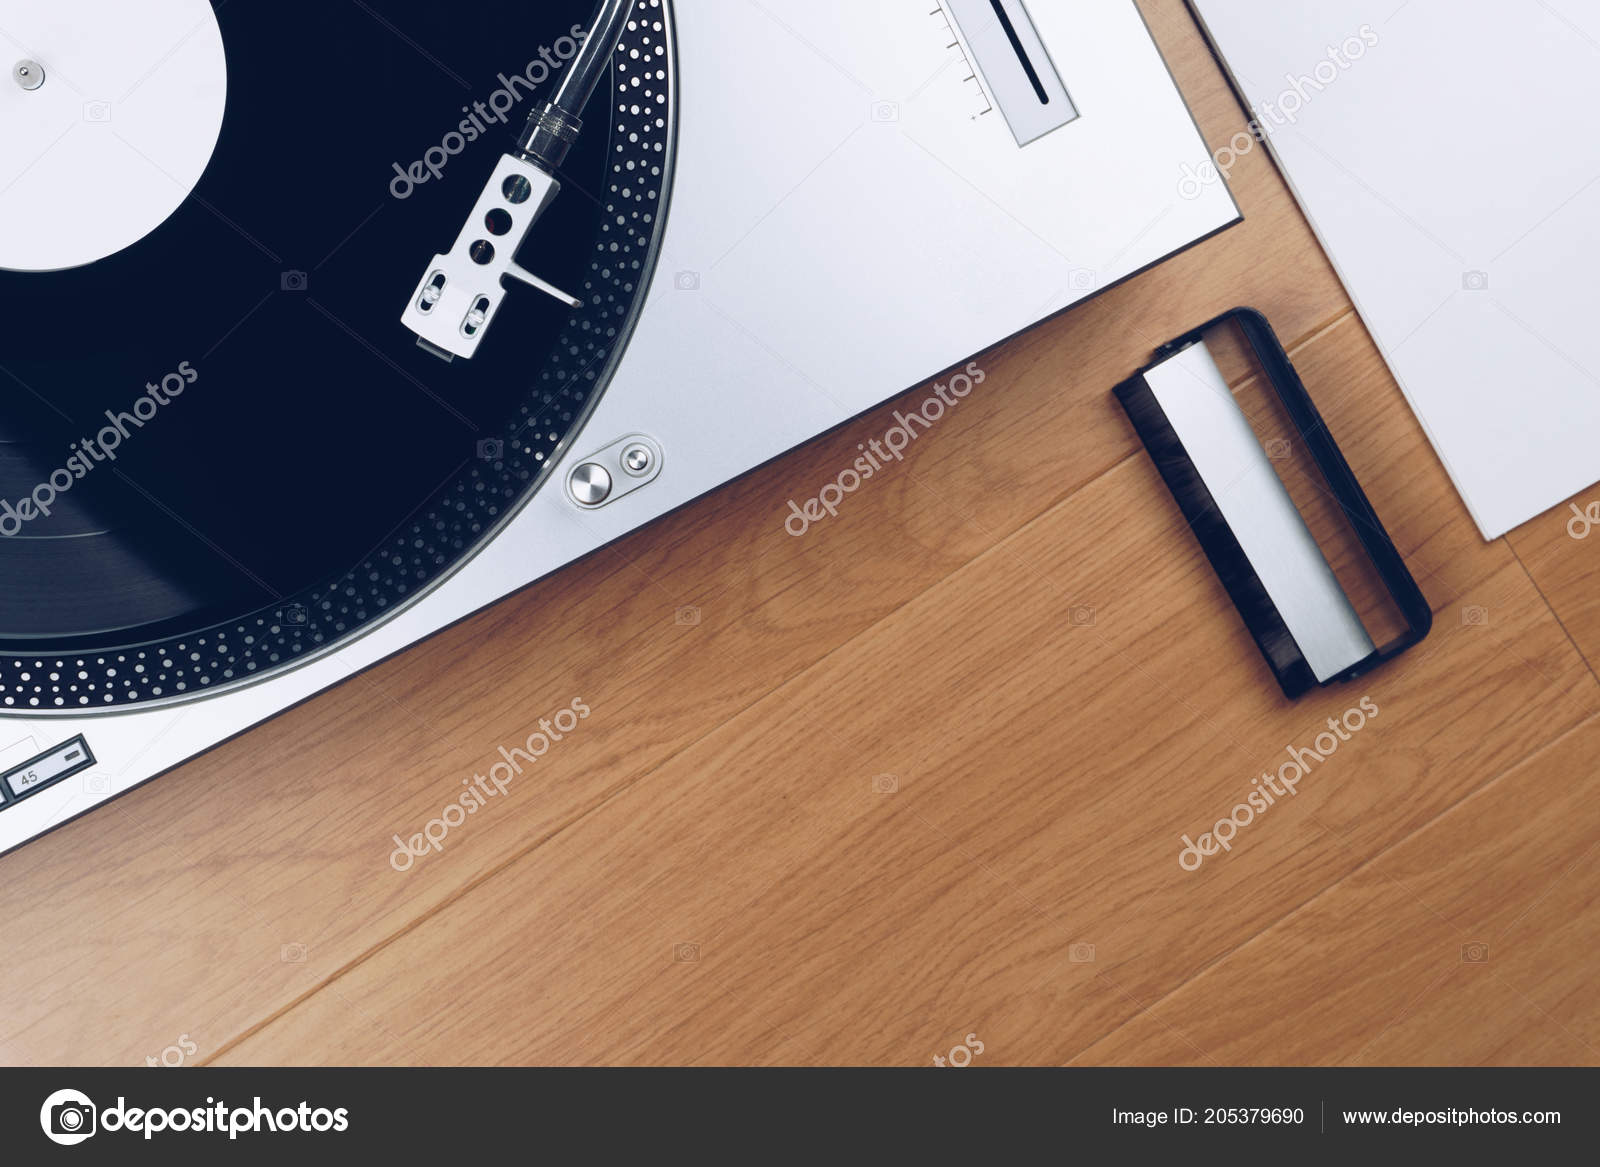 Top View Of A Record Player Or Turntable With Vinyl Carbon Fibre Cleaning Brush And Sleeve On The Wooden Floor Photo By Krisamorn